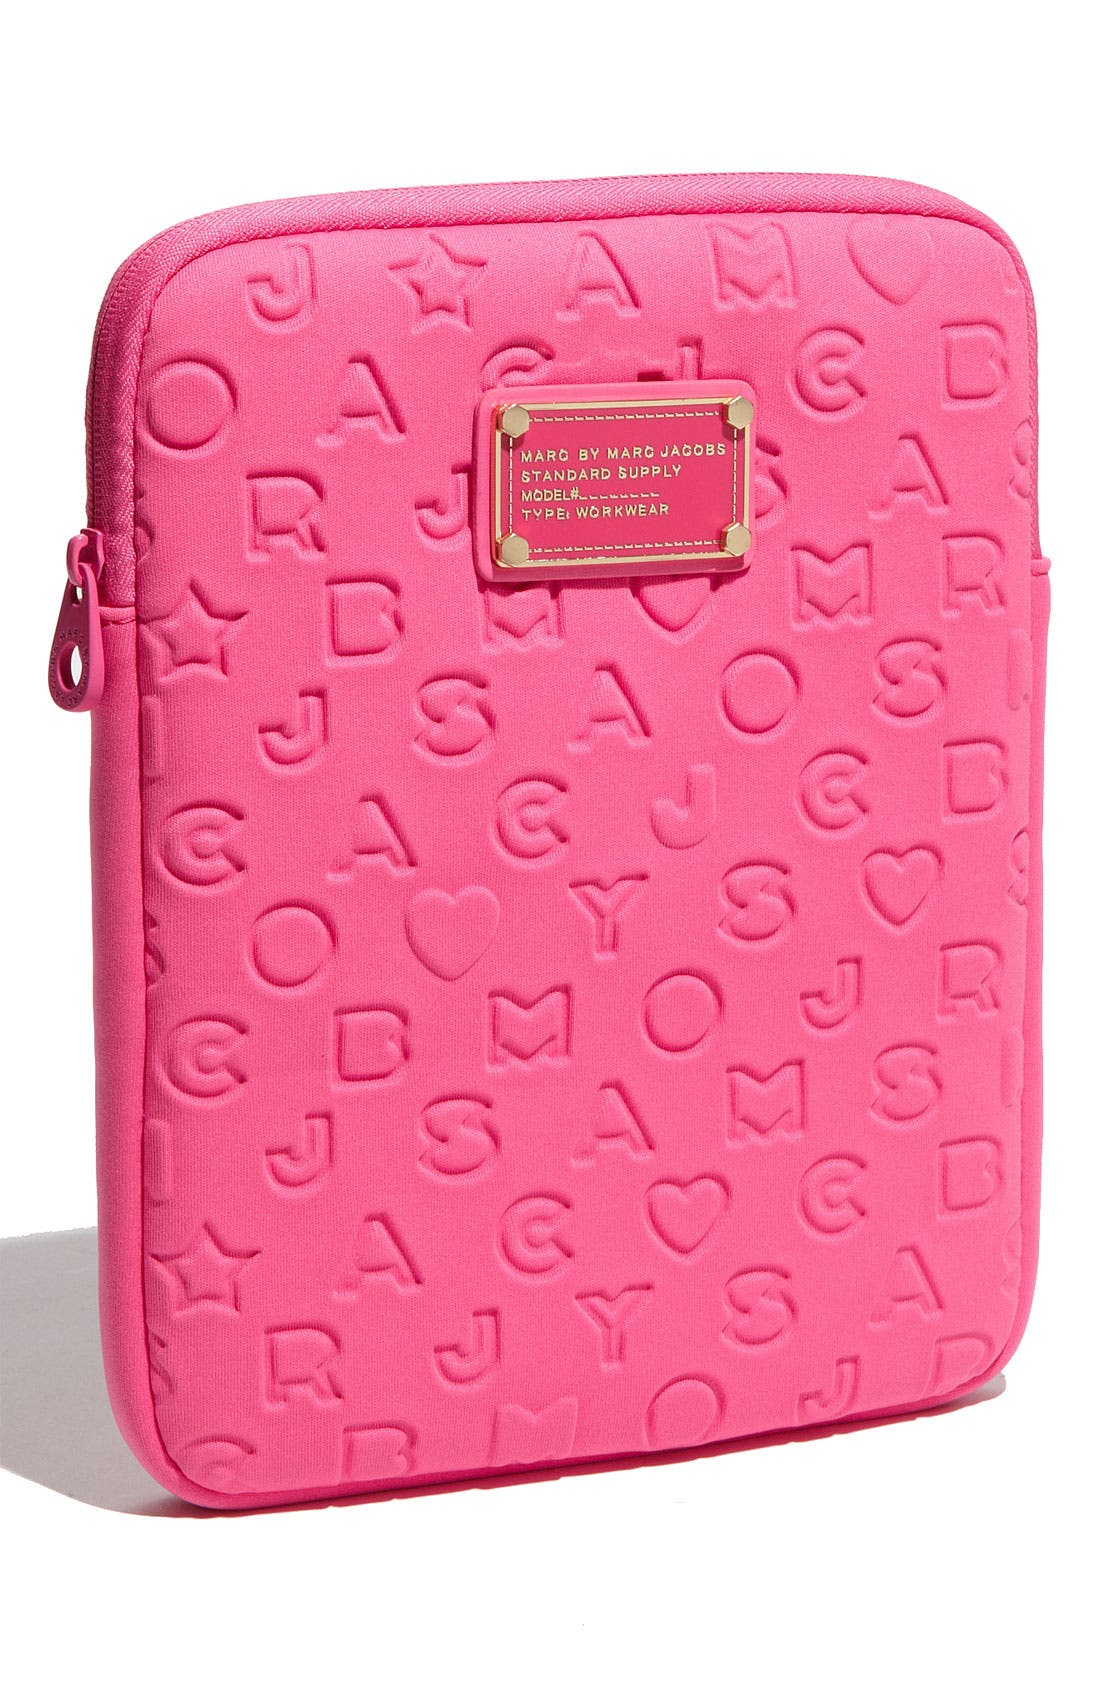 Alternate Image 1 Selected - MARC BY MARC JACOBS 'Stardust' iPad Case